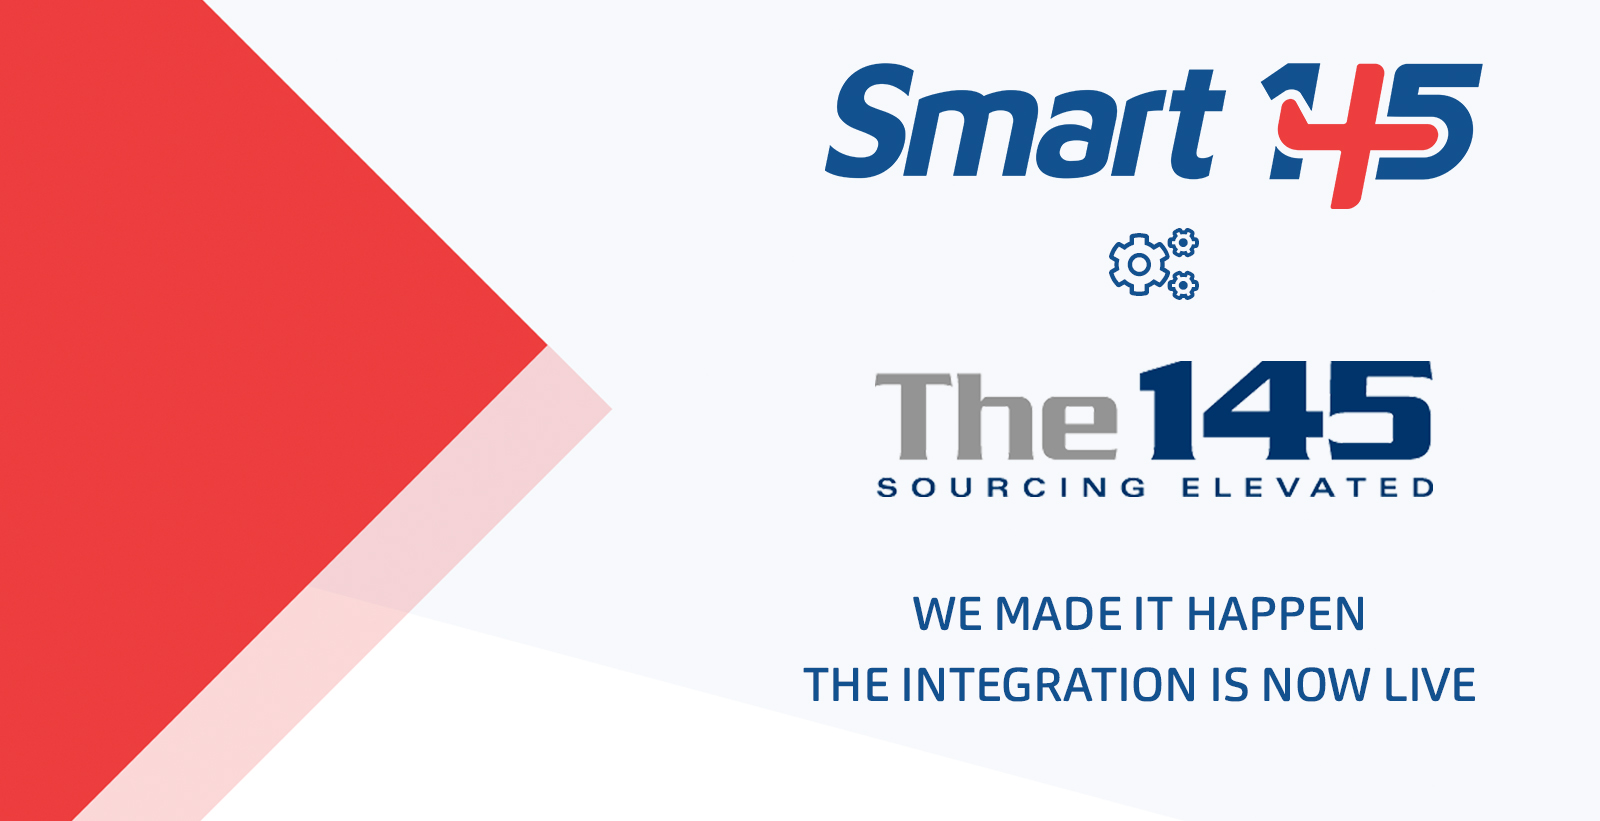 Smart145 and The 145: a new partnership